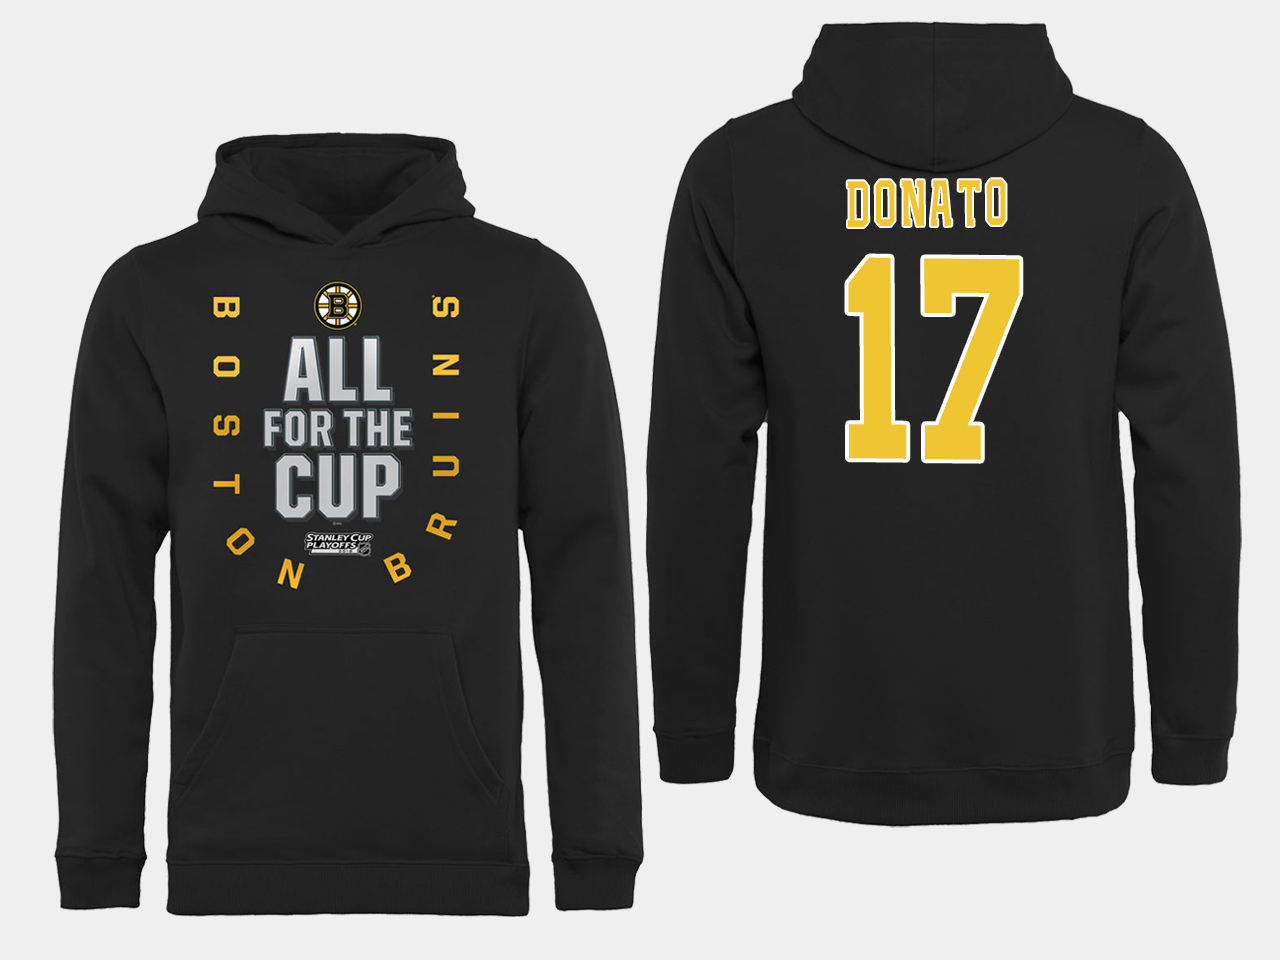 NHL Men Boston Bruins 17 Donato Black All for the Cup Hoodie